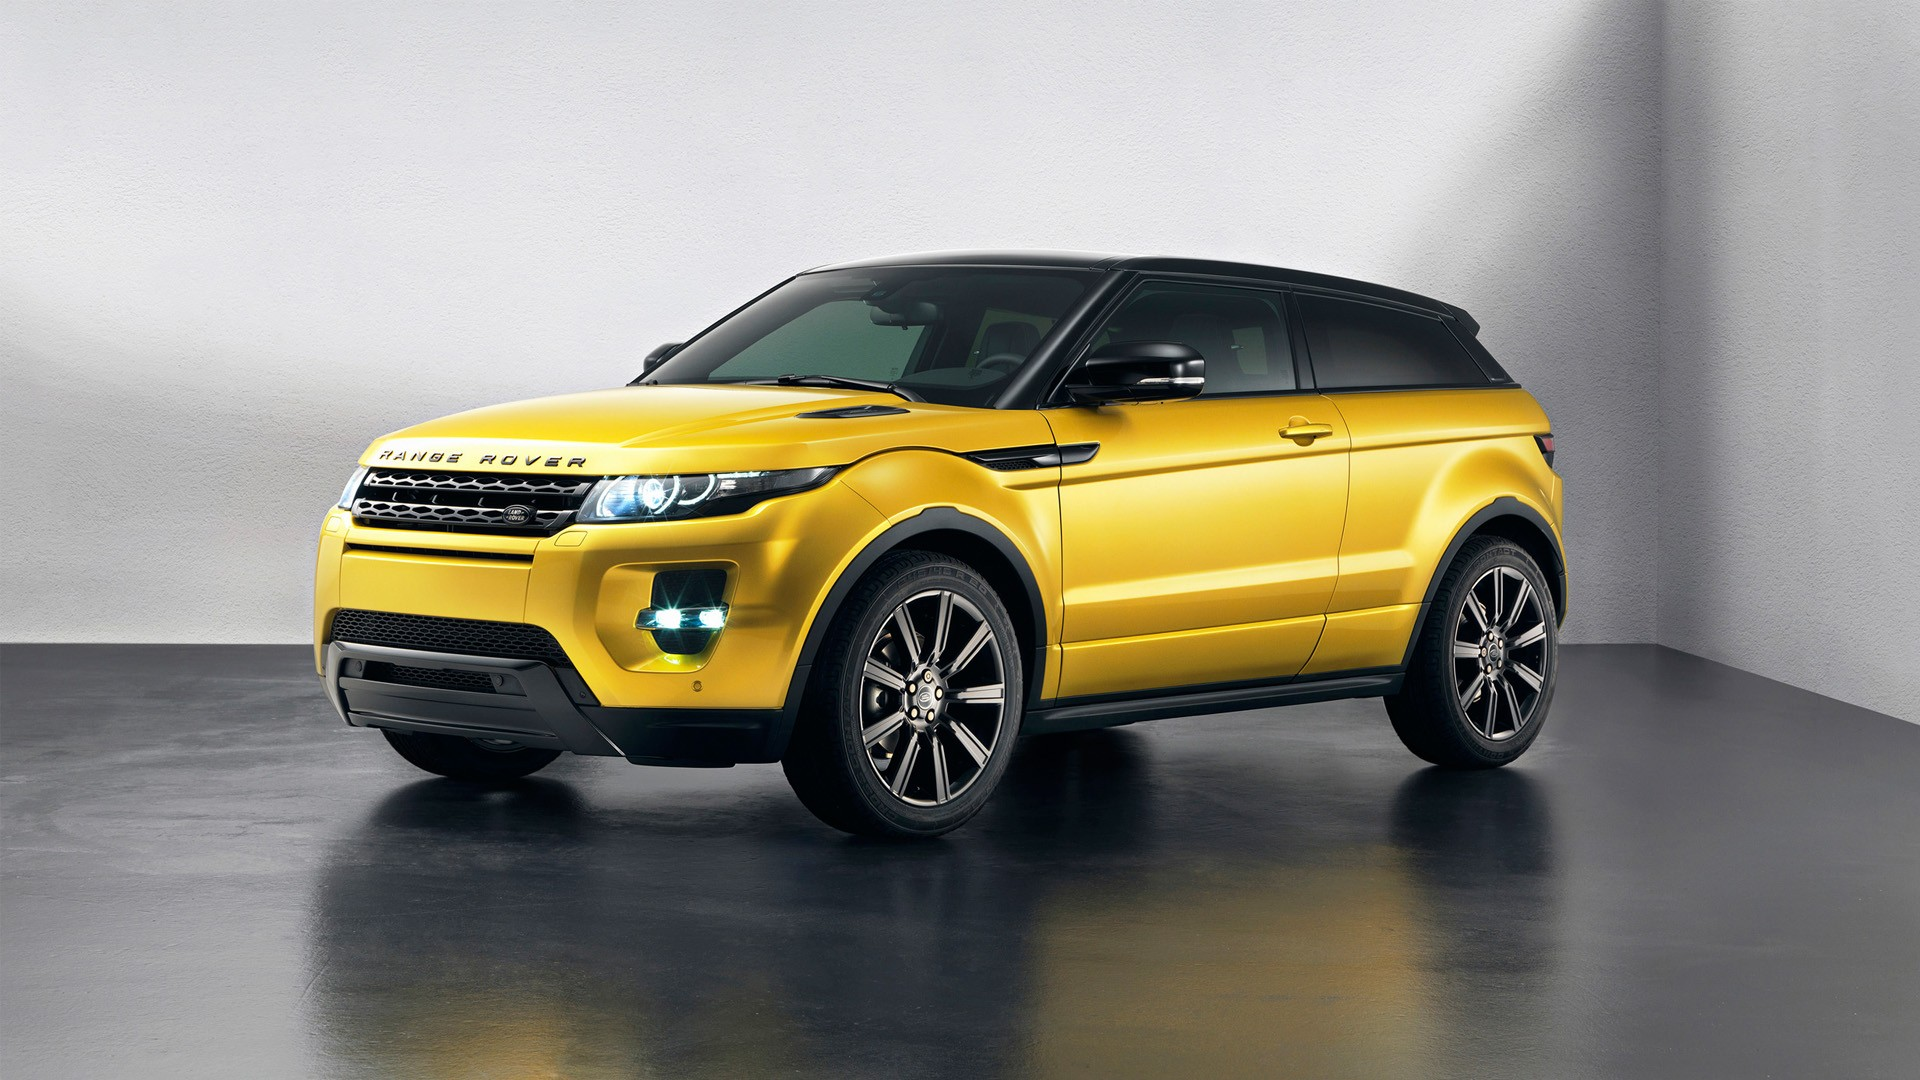 Iphone X Dynamic Wallpaper Android 2013 Land Rover Range Rover Evoque Special Edition